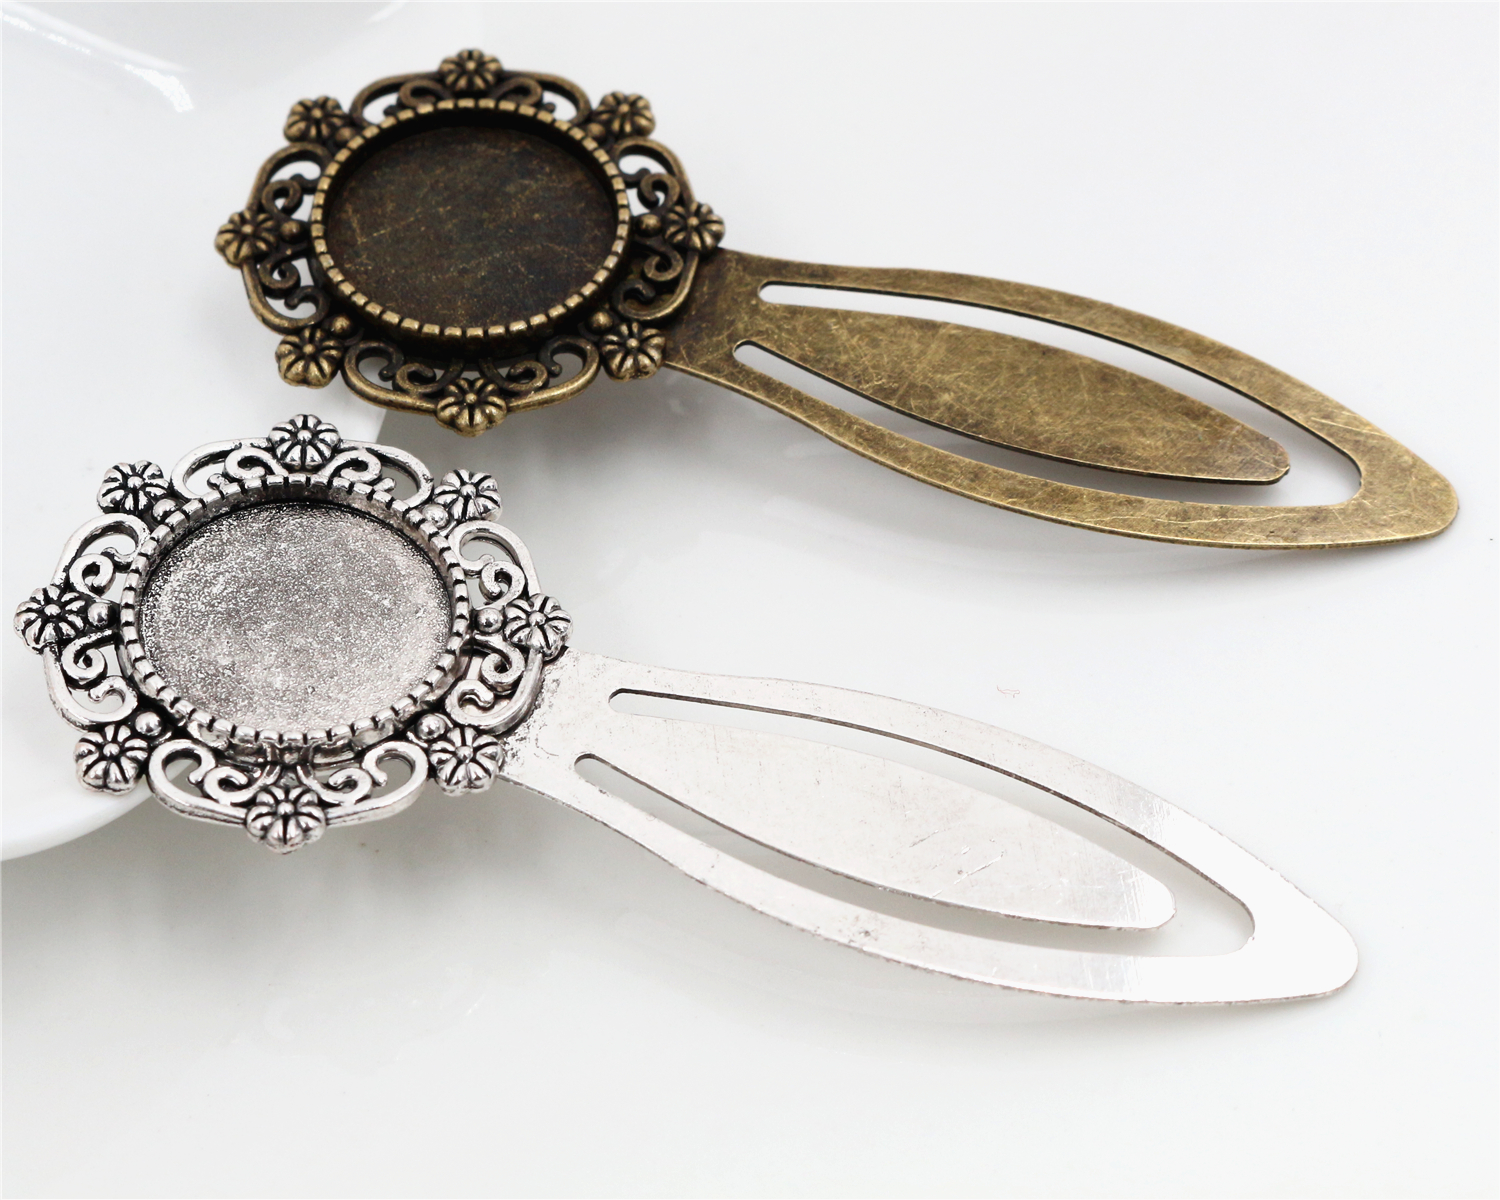 New Fashion 2pcs 18mm Inner Size Antique Bronze and Silver Vintage Style Handmade Bookmark Cabochon Base  Cameo Setting New Fashion 2pcs 18mm Inner Size Antique Bronze and Silver Vintage Style Handmade Bookmark Cabochon Base  Cameo Setting